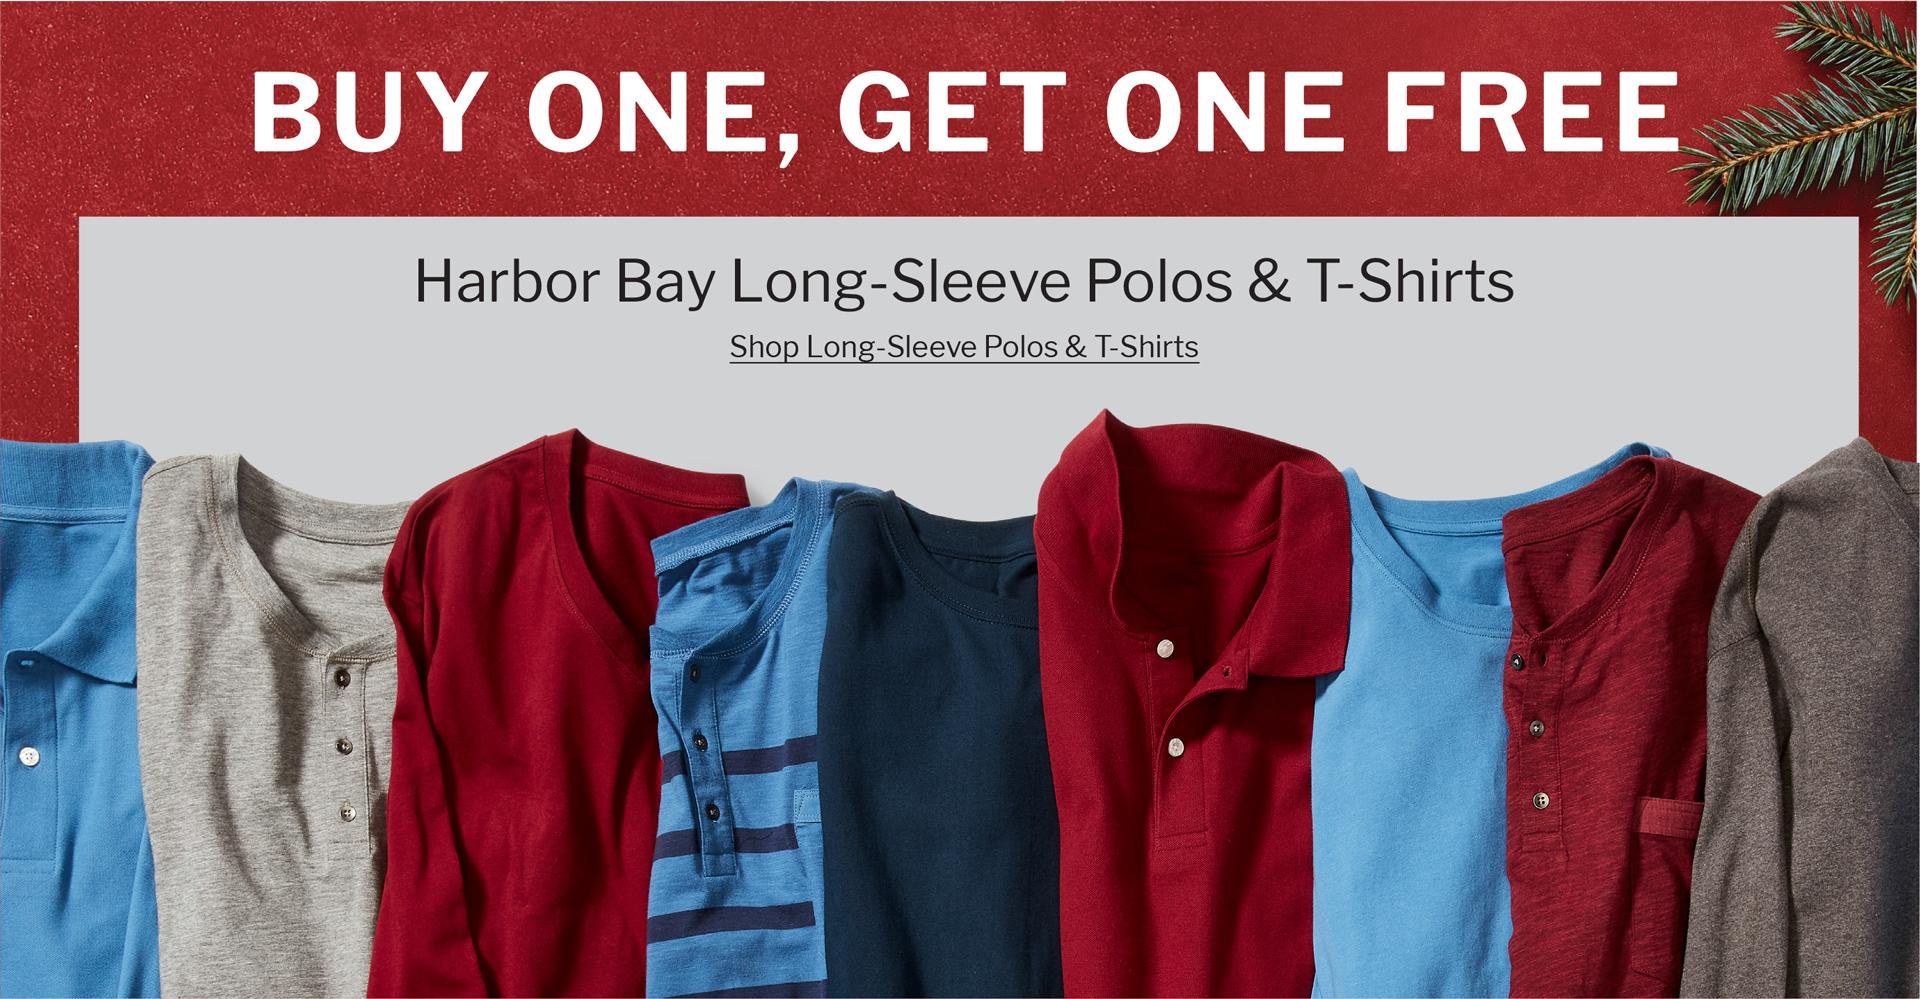 BUY ONE, GET ONE FREE | HARBOR BAY LONG-SLEEVE POLOS & T-SHIRTS